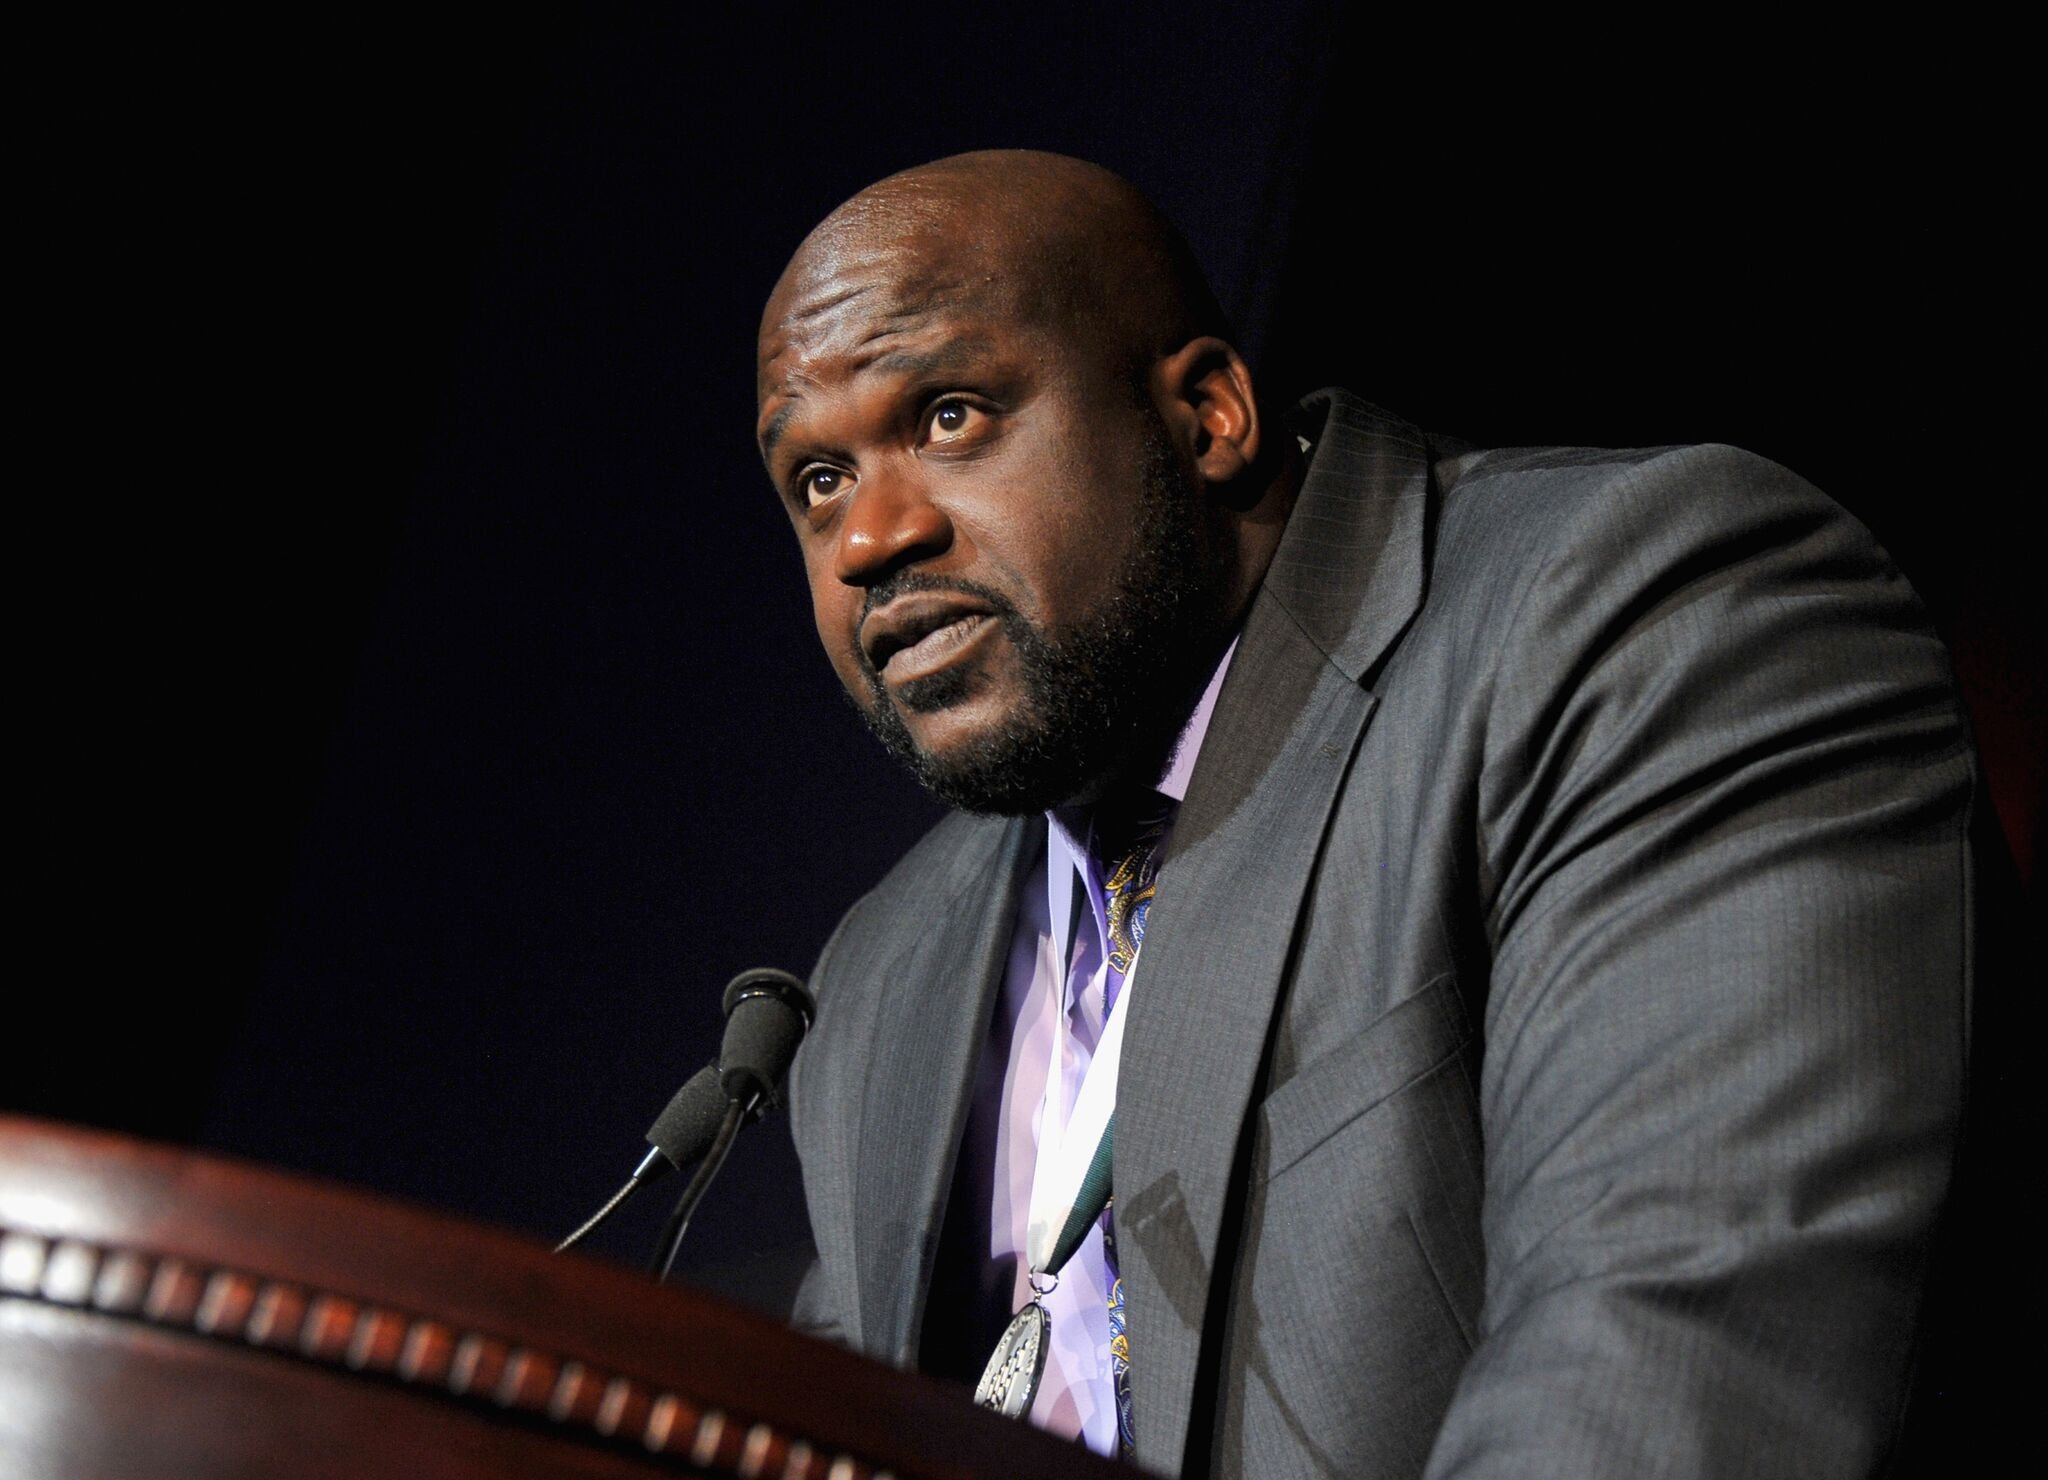 NBA basketball player Shaquille O'Neal speaks onstage at the 27th Annual Great Sports Legends Dinner to benefit the Buoniconti Fund to Cure Paralysis at The Waldorf=Astoria on September 24, 2012 | Photo: Getty Images